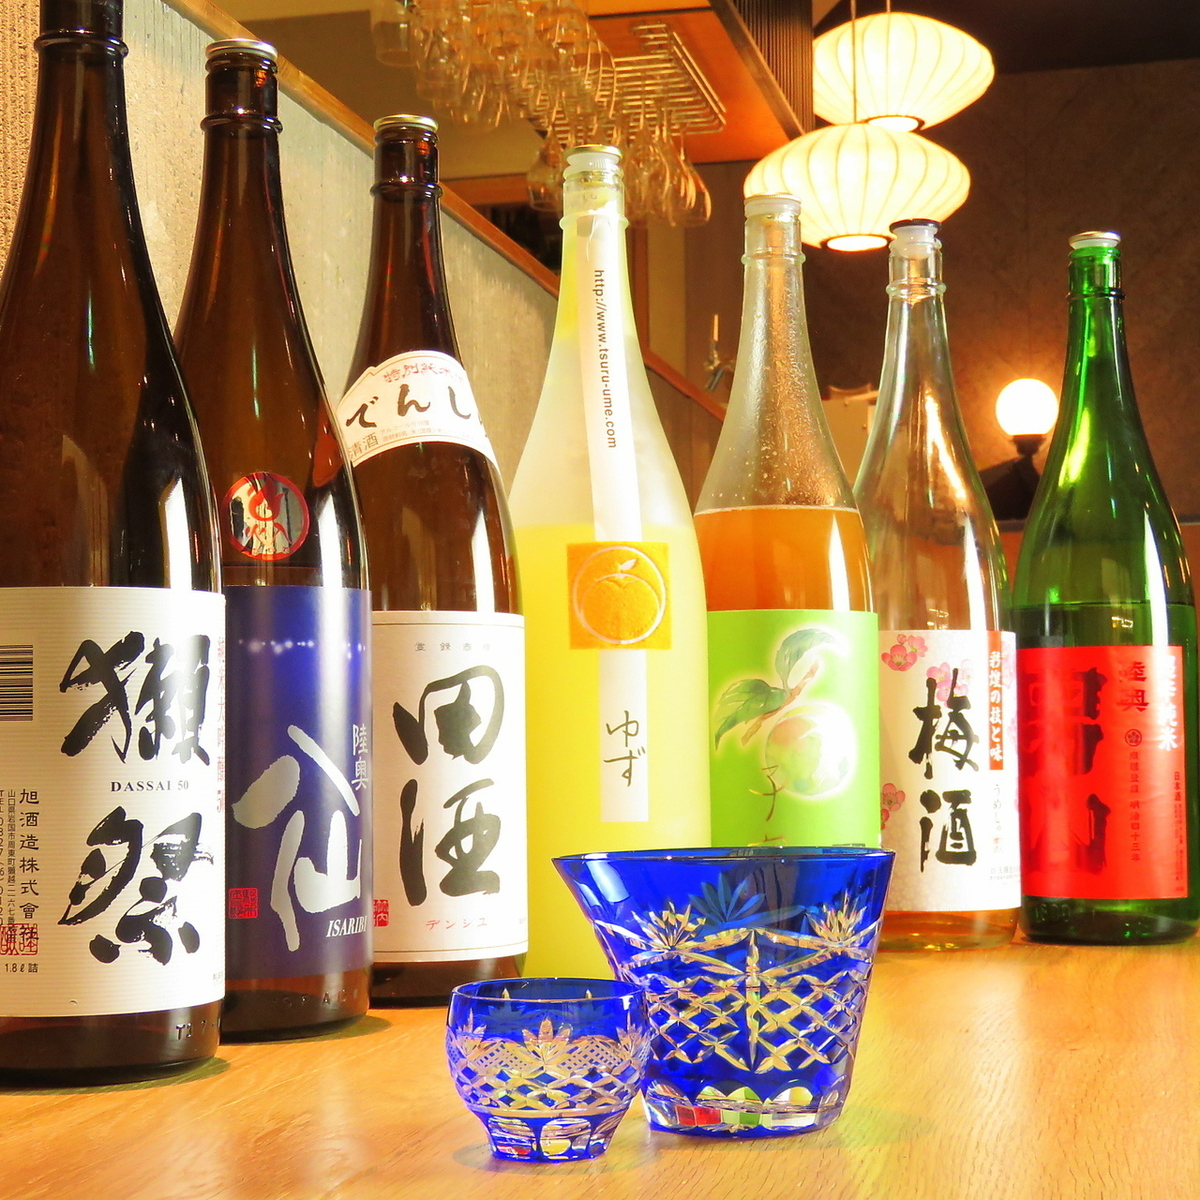 You can taste local sake